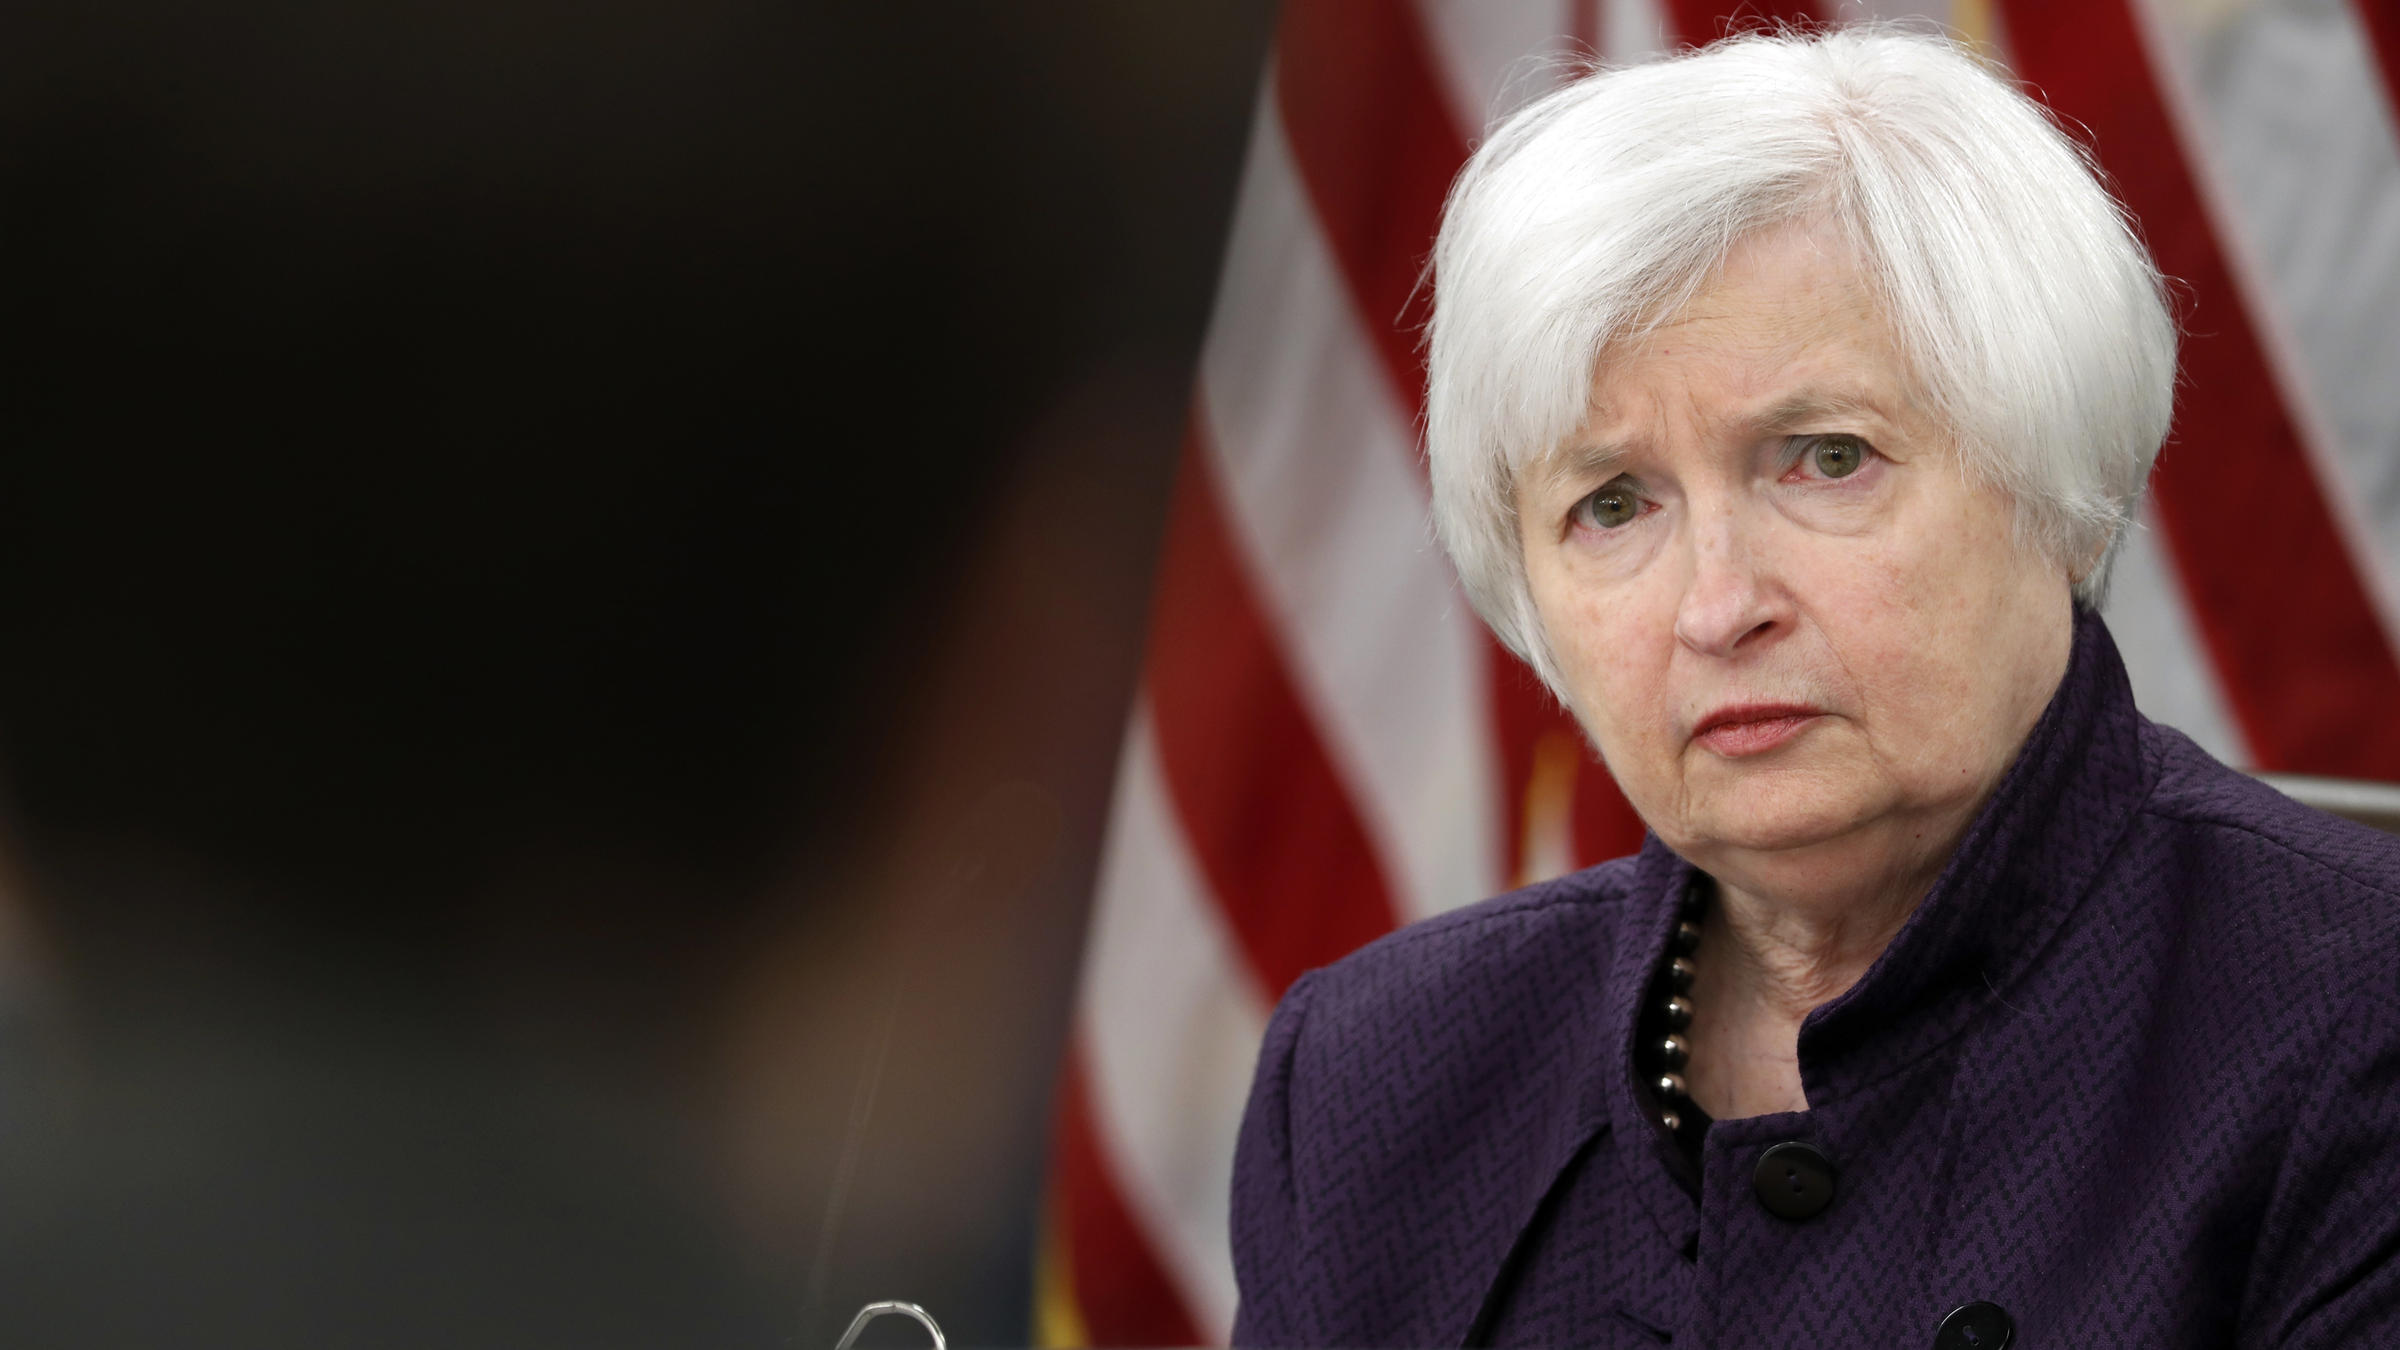 ... interest rate steady, she still expects it to raise the rate this year